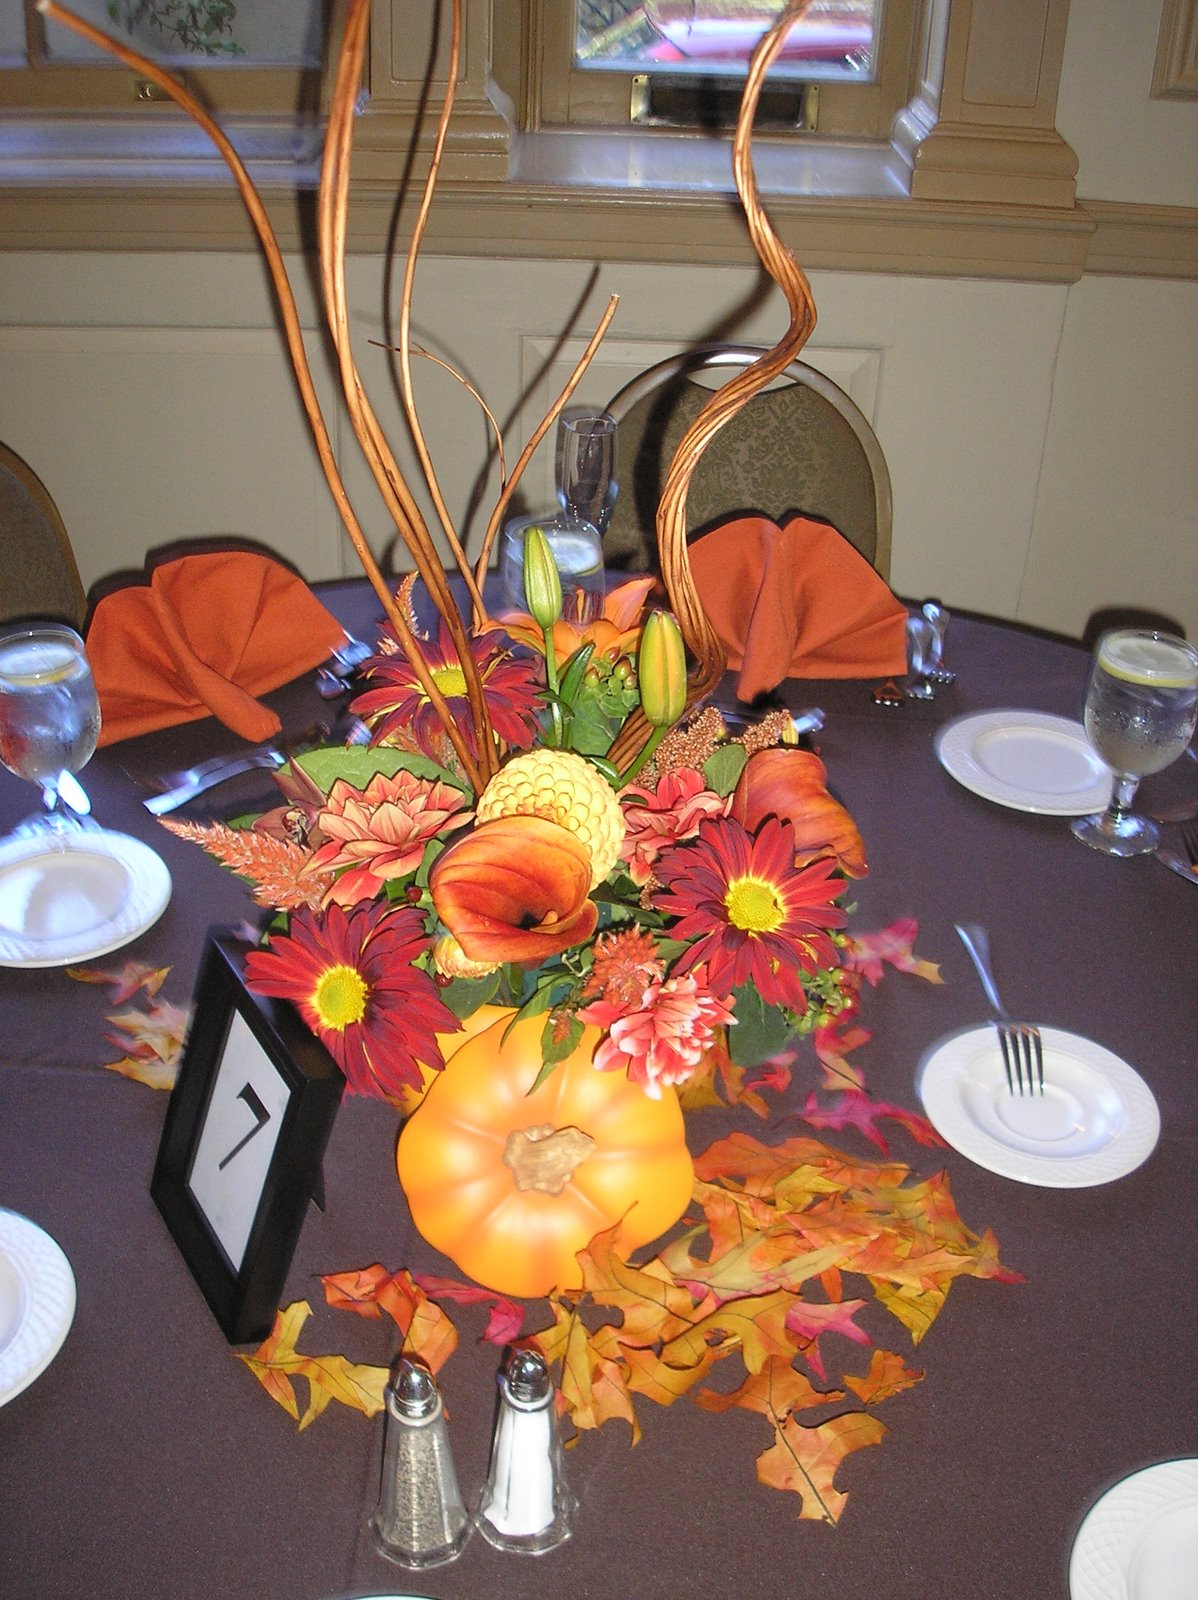 Nancees blog fall wedding centerpieces on a fall wedding centerpieces on a junglespirit Images